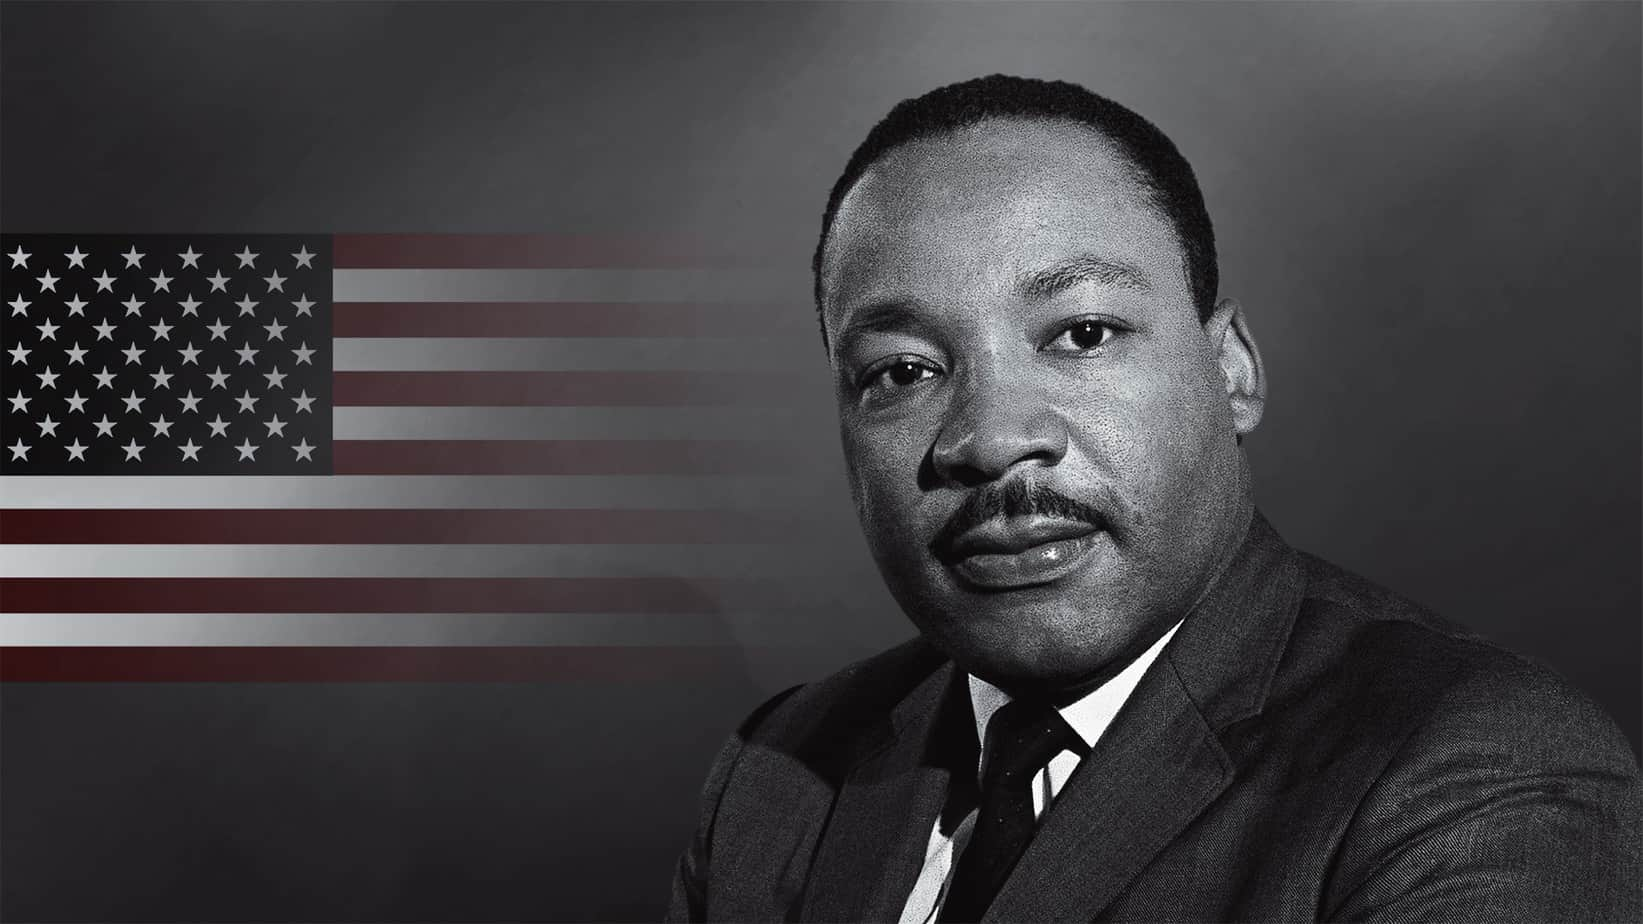 7 Ways to Celebrate Martin Luther King, Jr. on MLK Day (2019)